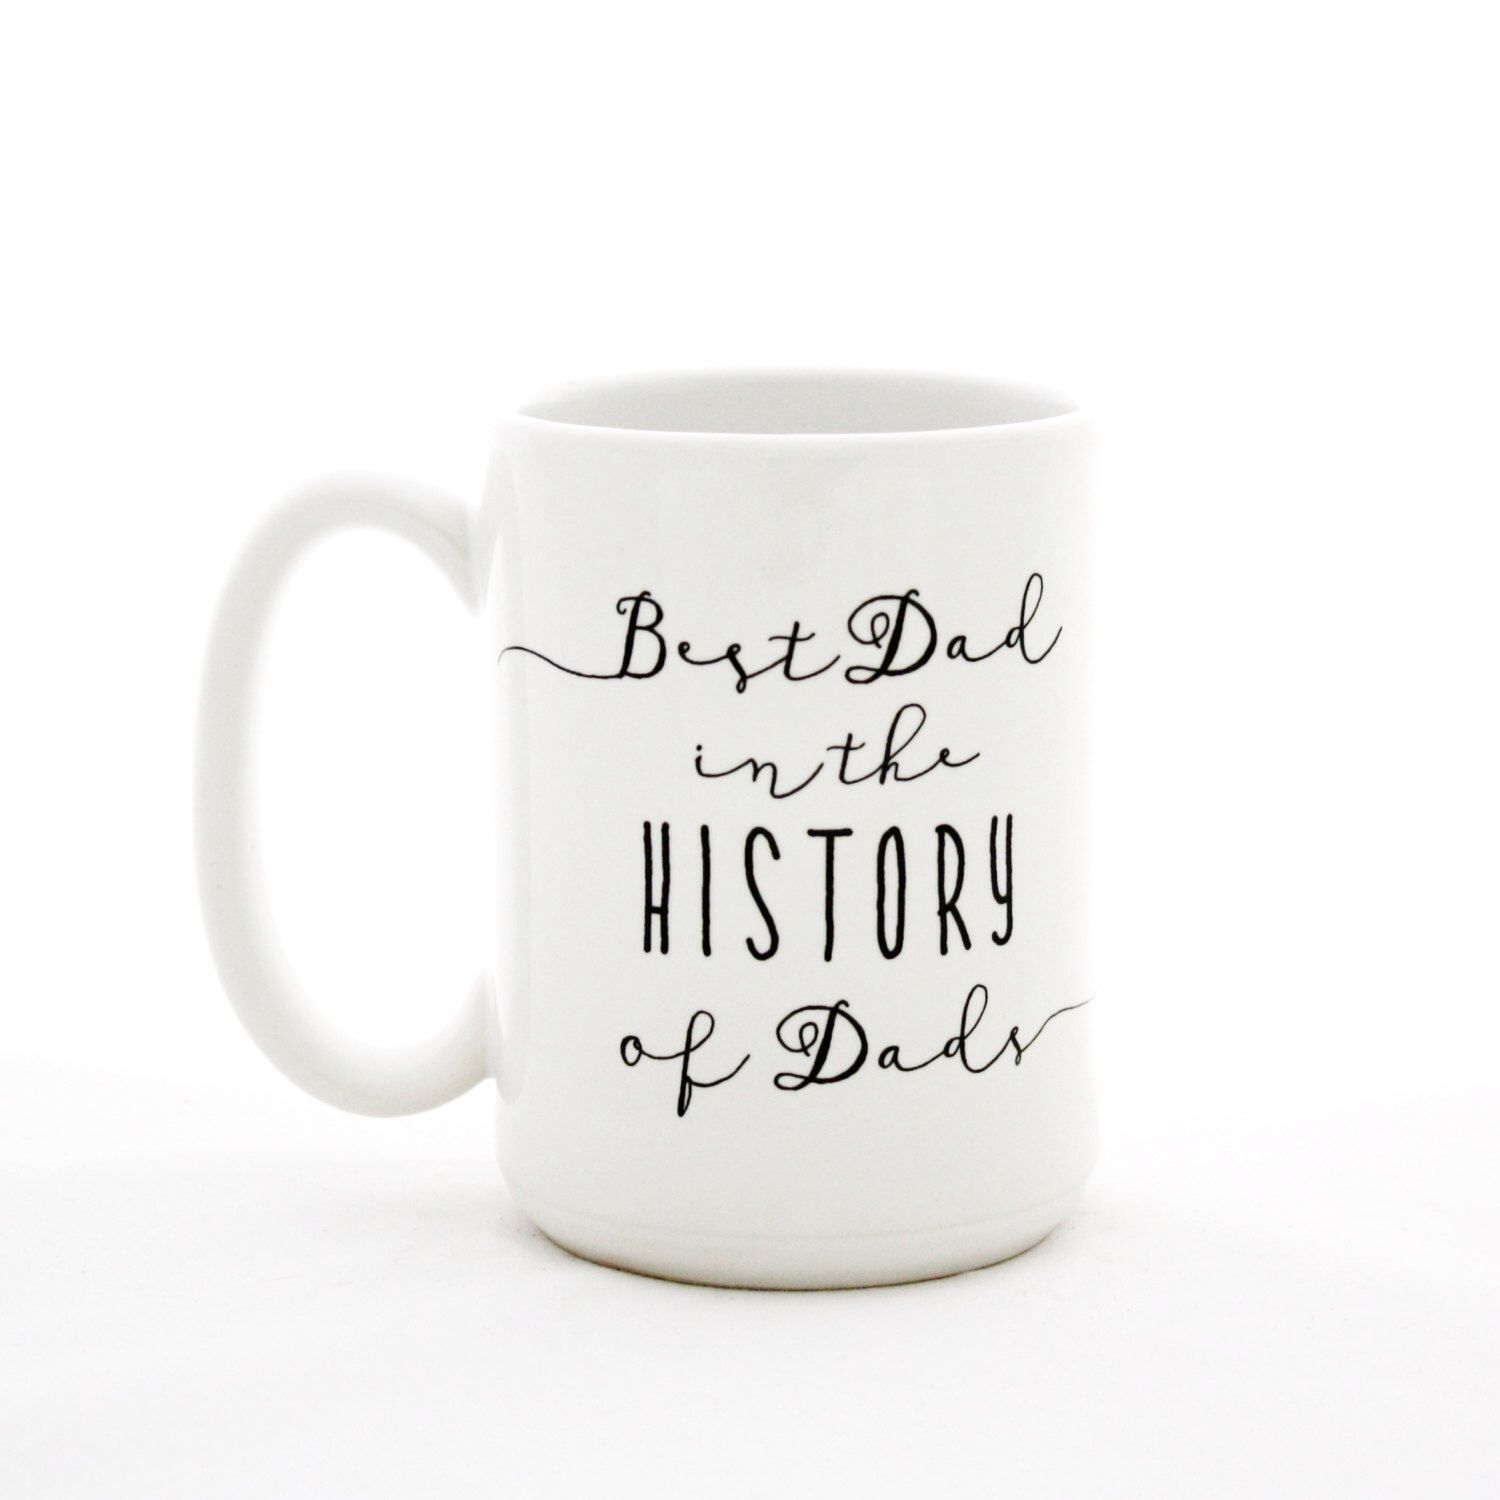 Father's Day mug. Best Dad in the History of Dads. Gift idea for him by Milk & Honey. Dishwasher safe. by MilkandHoneyLuxuries on Etsy https://www.etsy.com/listing/233054128/fathers-day-mug-best-dad-in-the-history